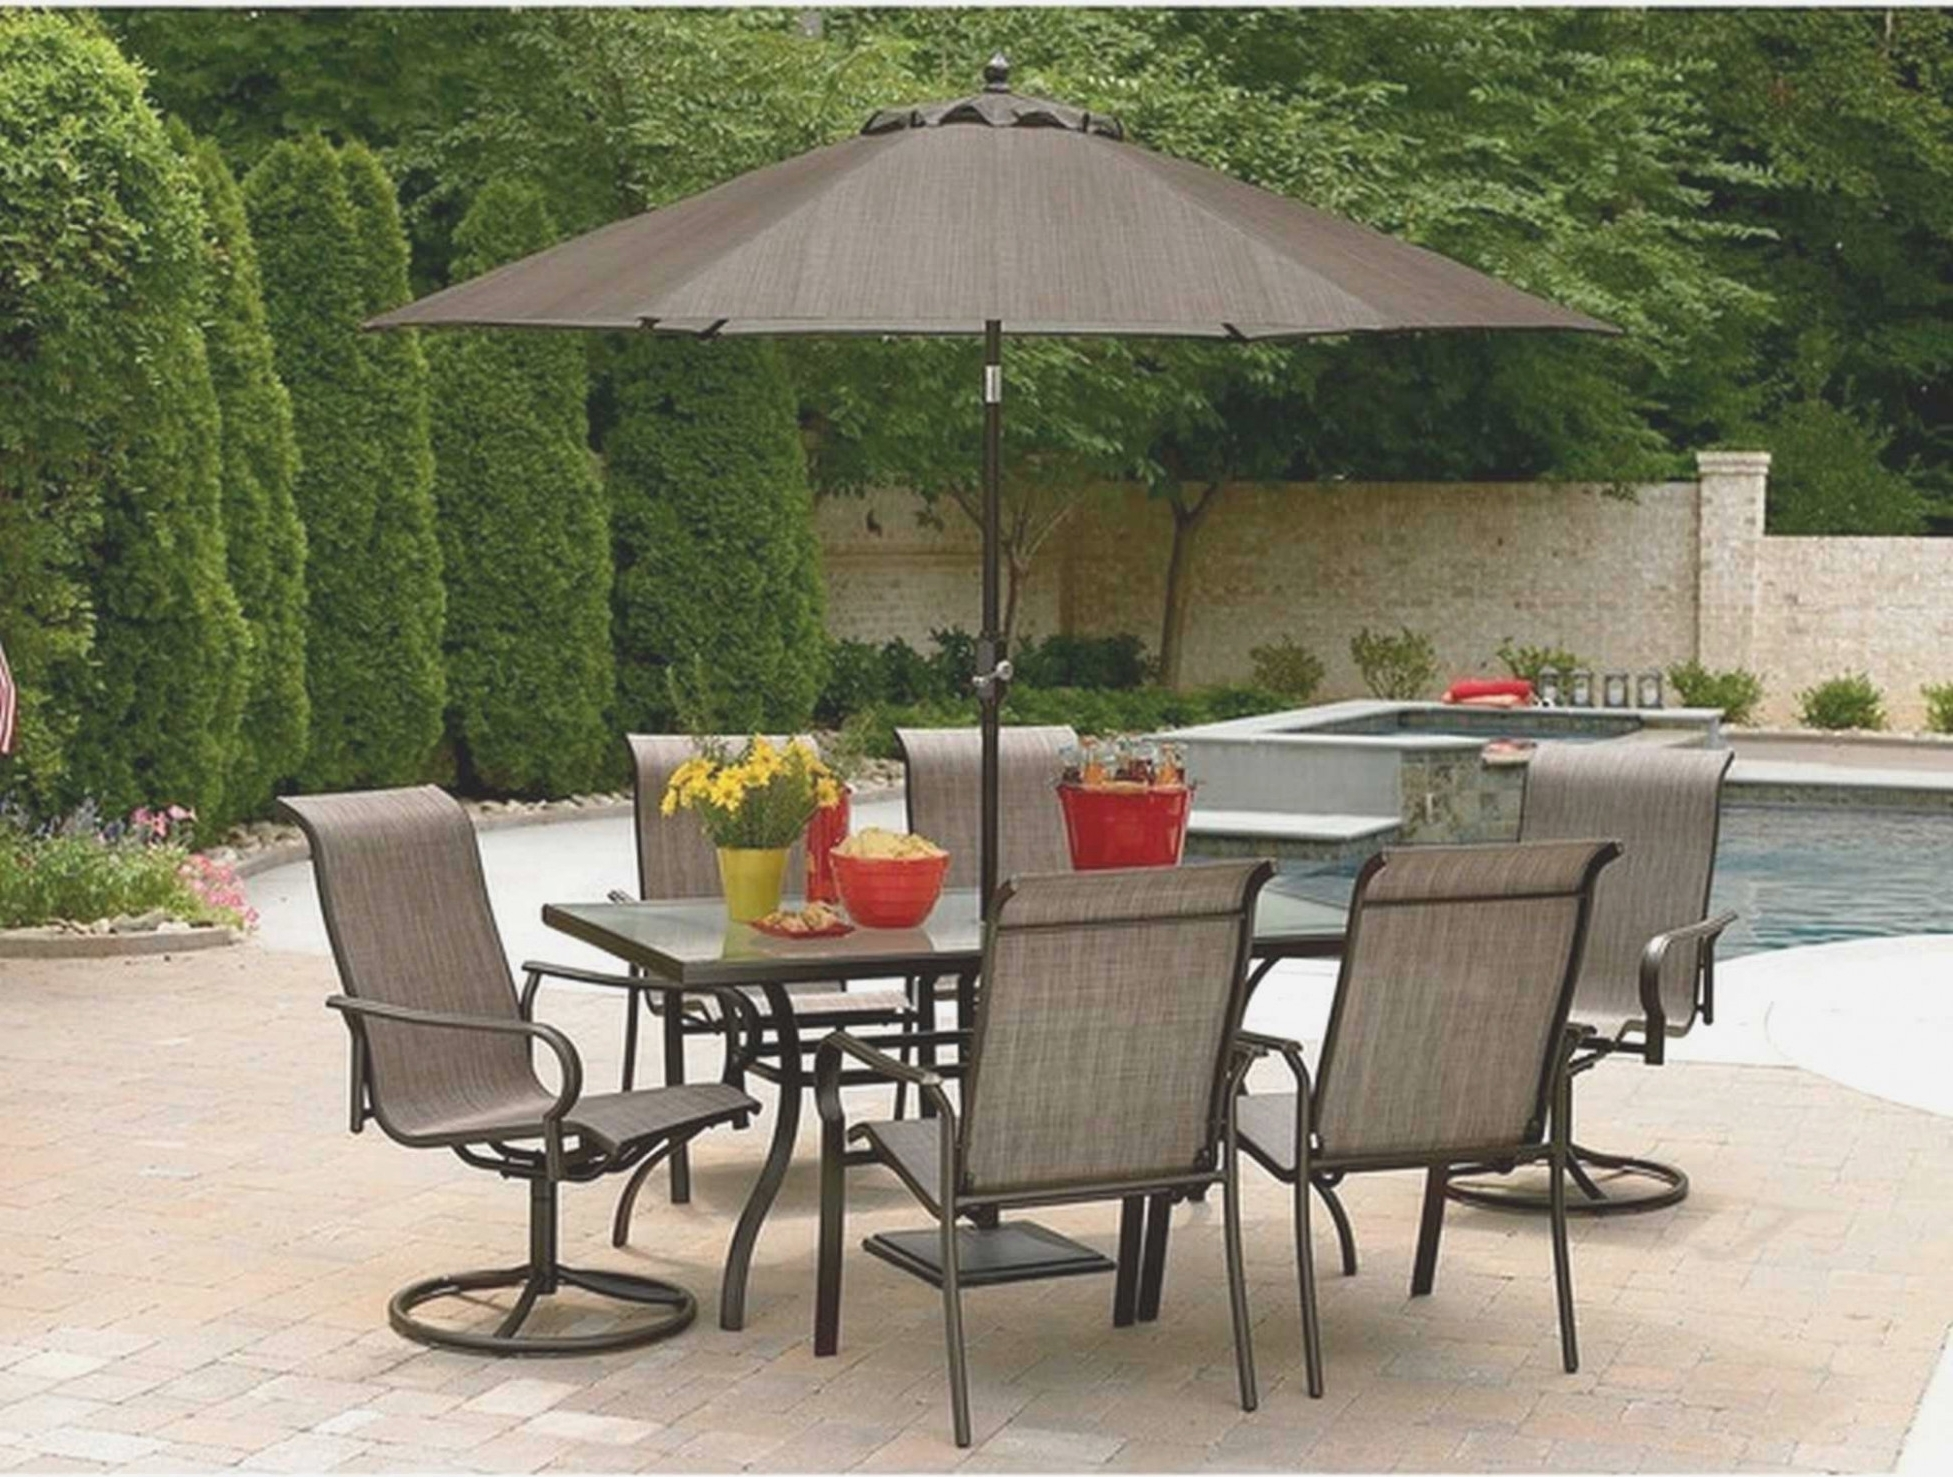 Well Liked Sears Patio Umbrella Inspirational Patio Sears Patio Umbrellas Brown In Sears Patio Umbrellas (View 20 of 20)